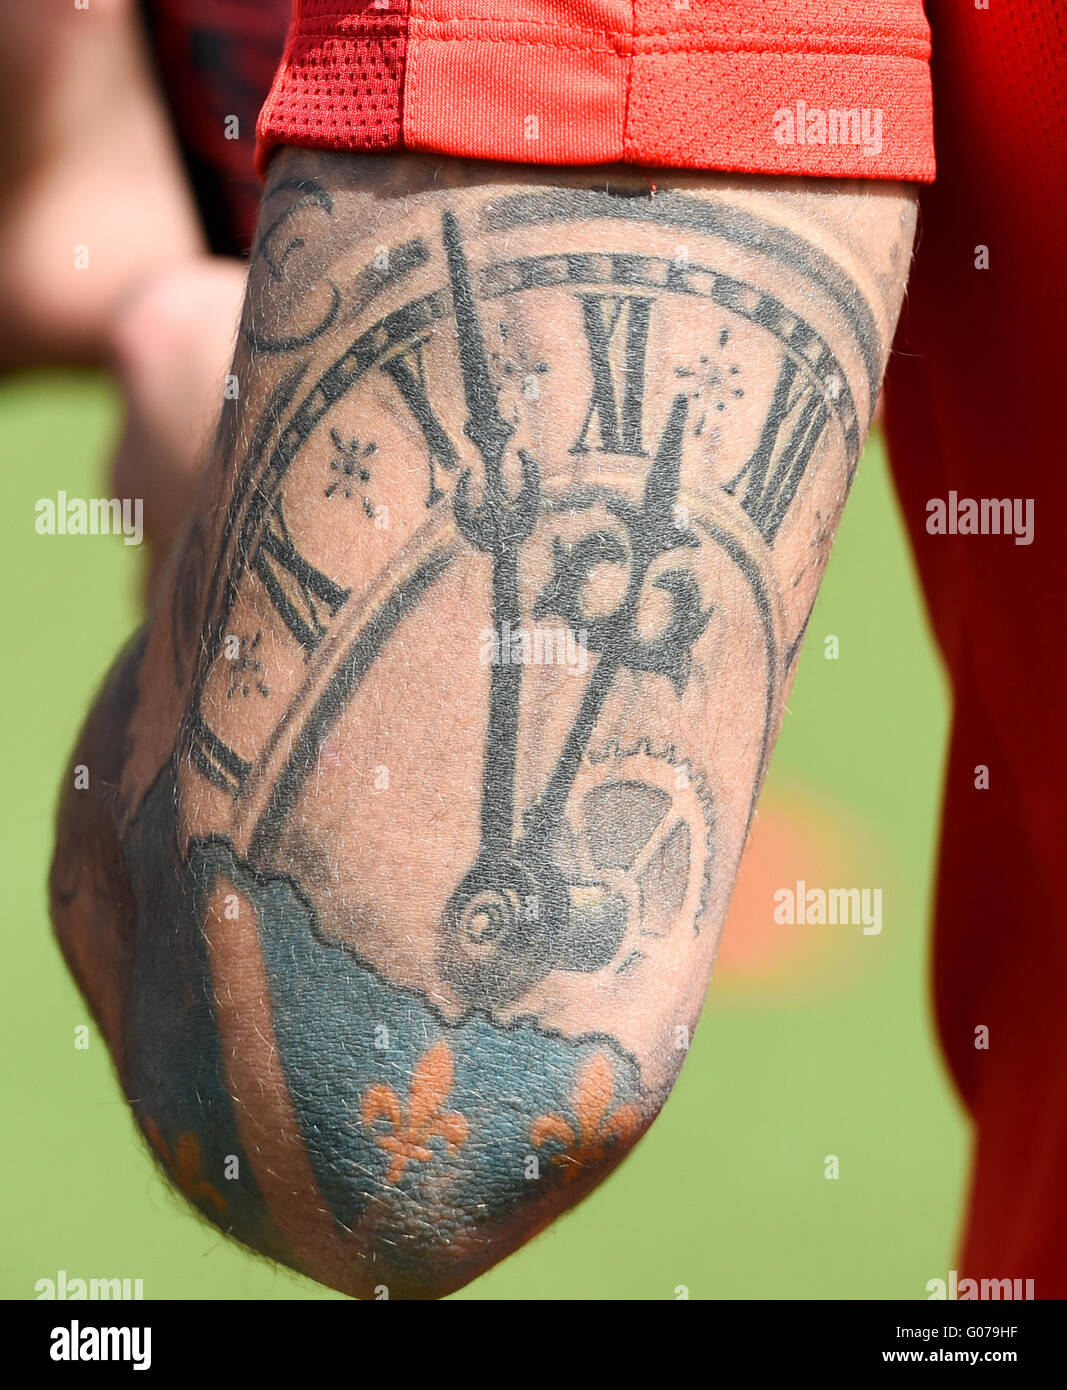 Luis Alberto, Guido Burgstaller, Marcelo Brozovic Tattoos  - Page 3 Darmstadt-germany-30th-apr-2016-frankfurts-haris-seferovic-with-a-G079HF